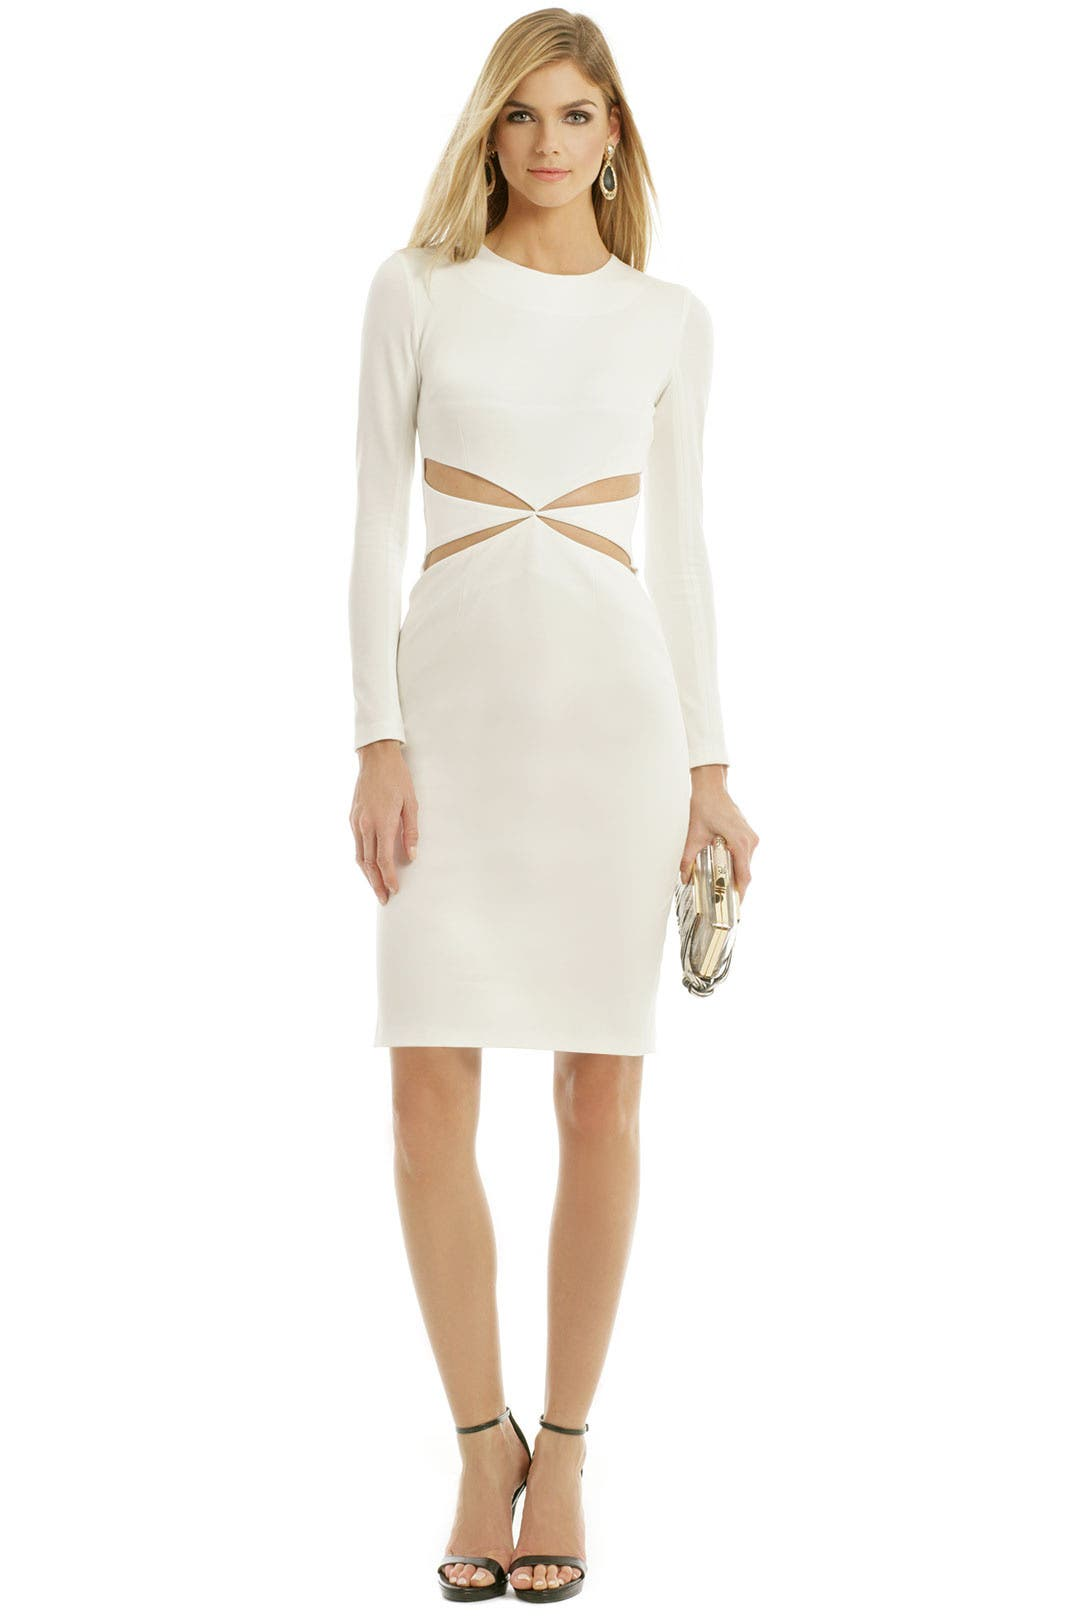 X Marks the Spot Dress by Cushnie Et Ochs